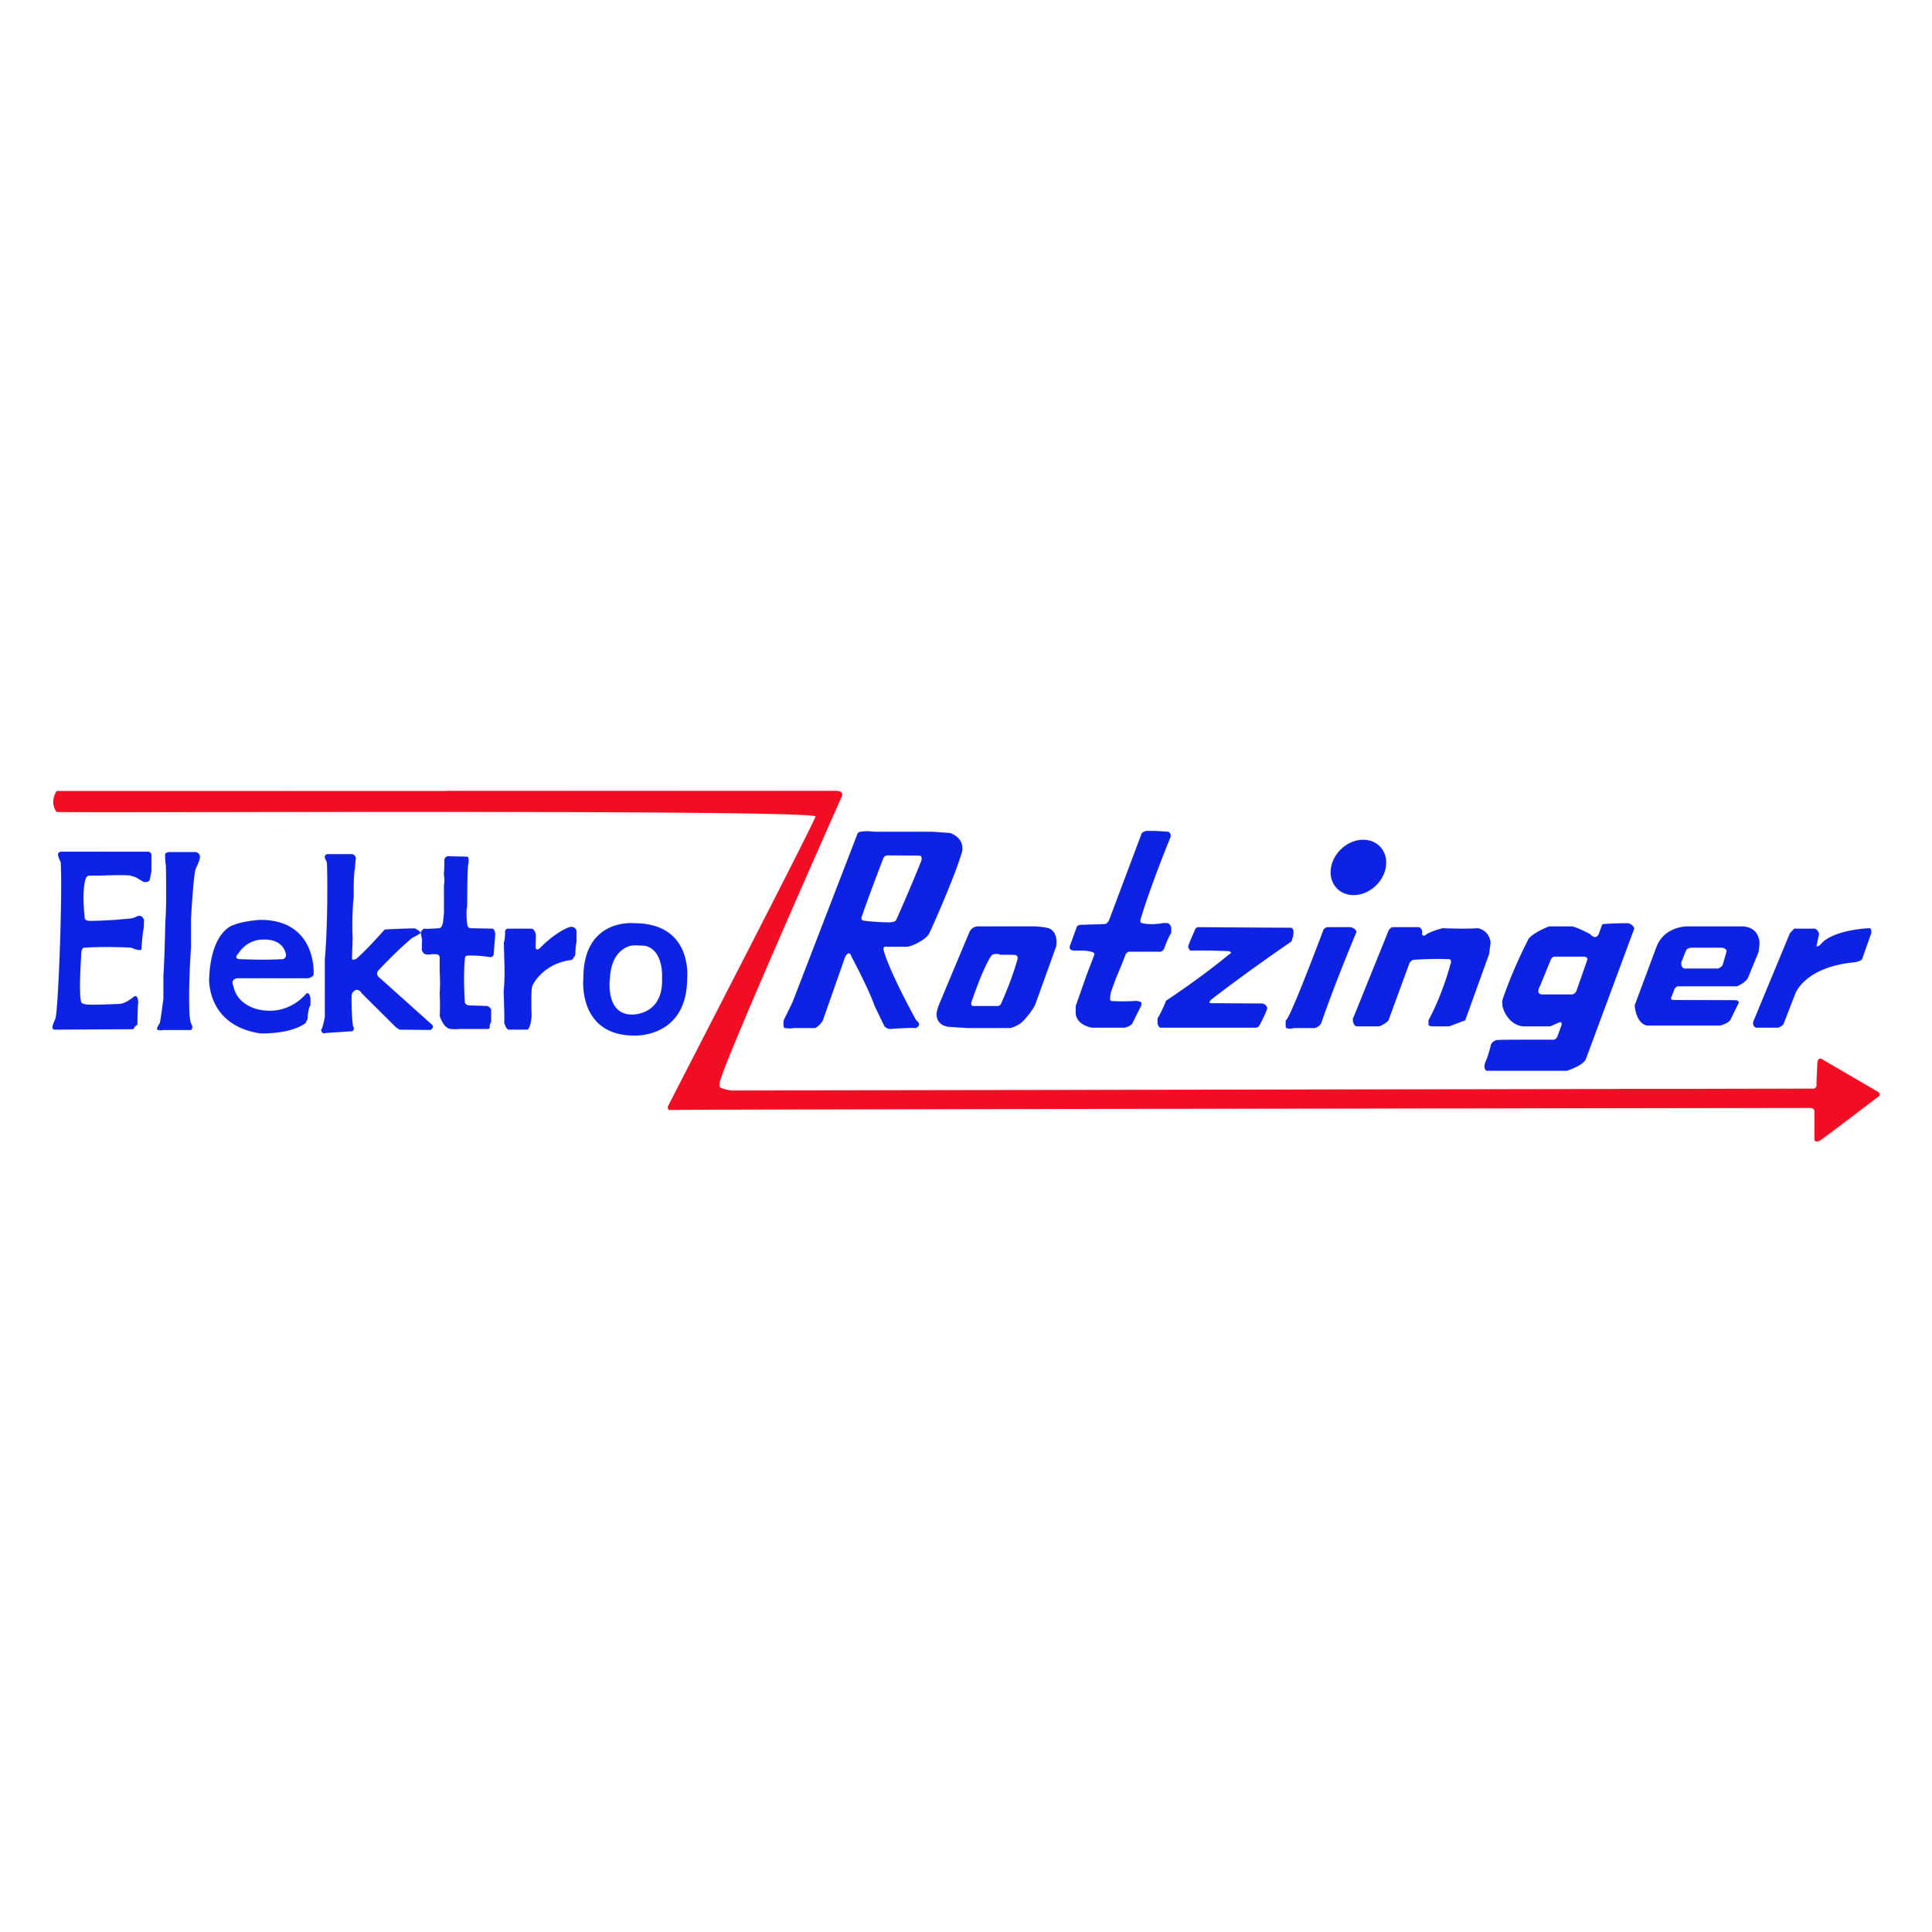 elektro rotzinger gmbh co kg in 24582 bordesholm. Black Bedroom Furniture Sets. Home Design Ideas